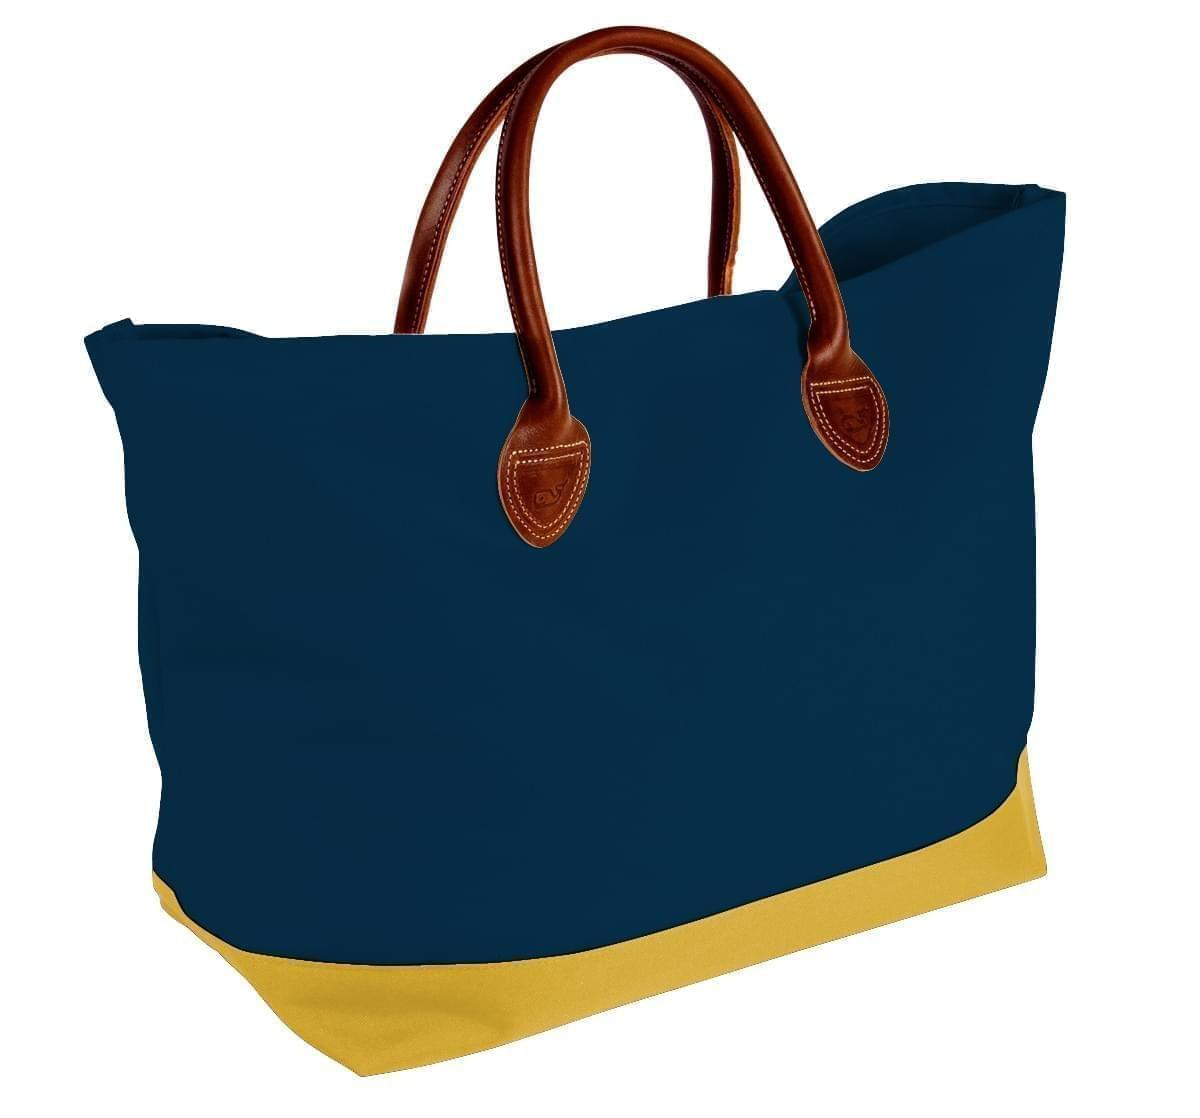 USA Made Canvas Leather Handle Totes, Navy-Gold, 10899-QC9